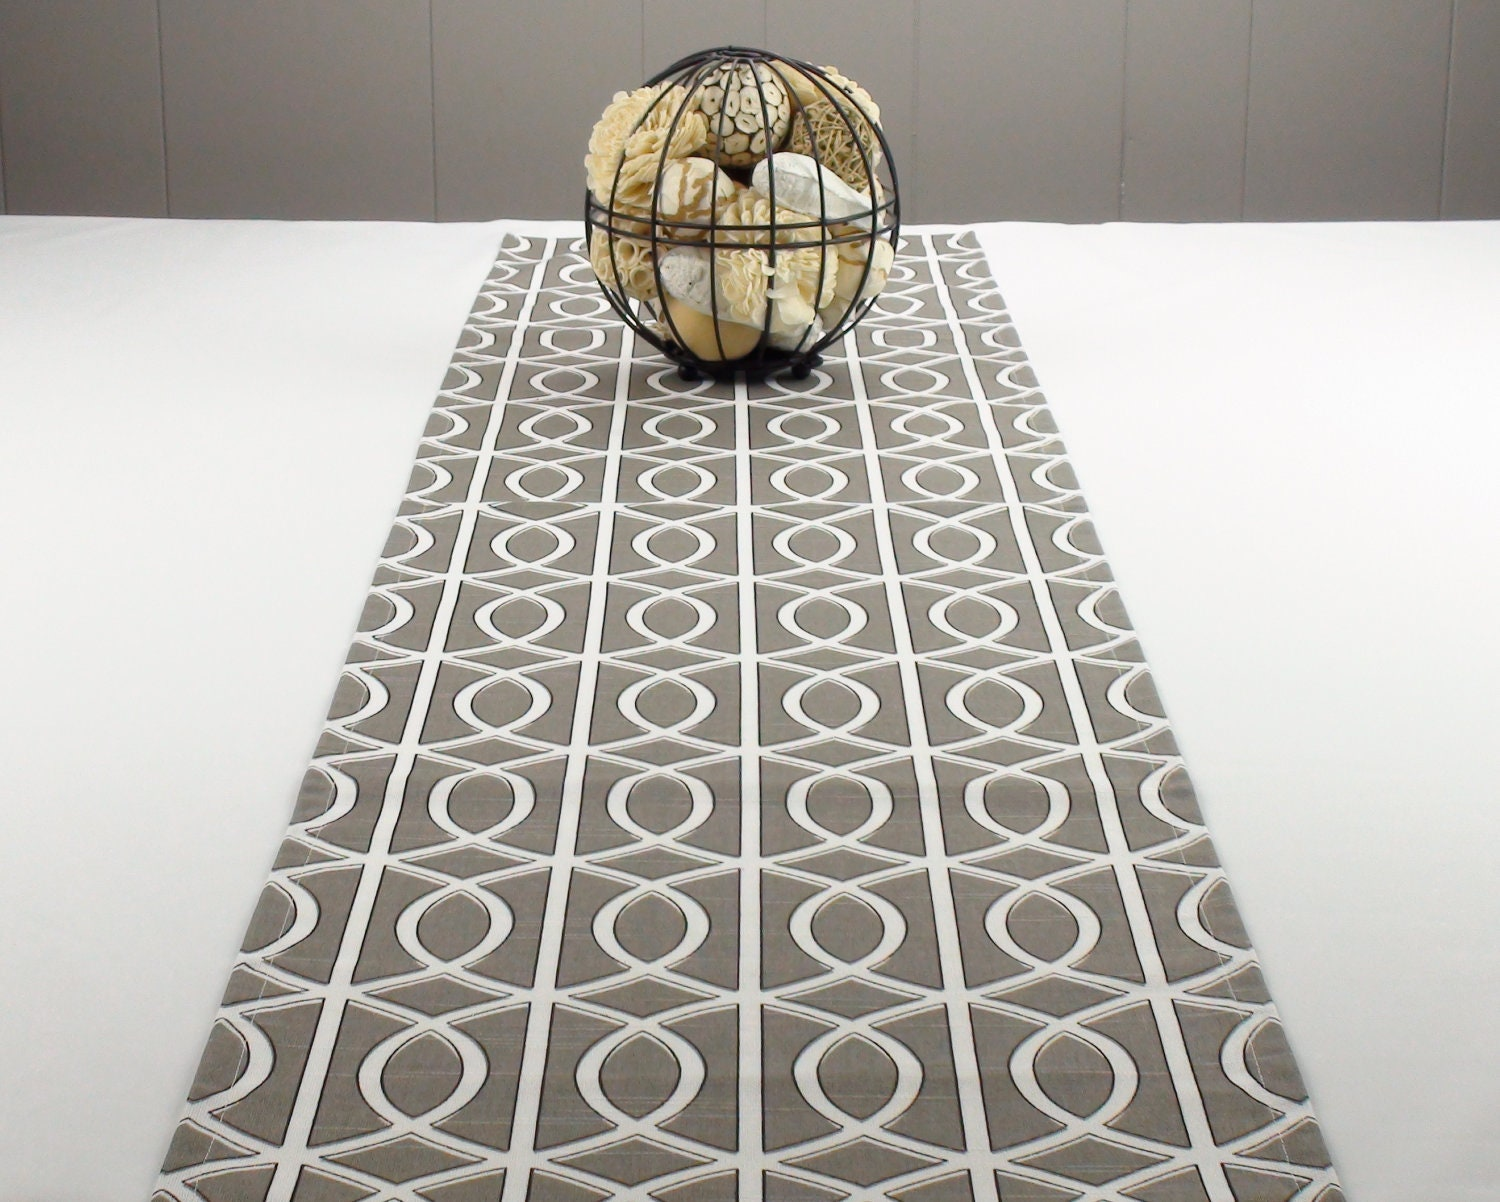 Modern Geometric Table Runner - Charcoal Grey and White Colors 96 inch long table runner - ProperPillow